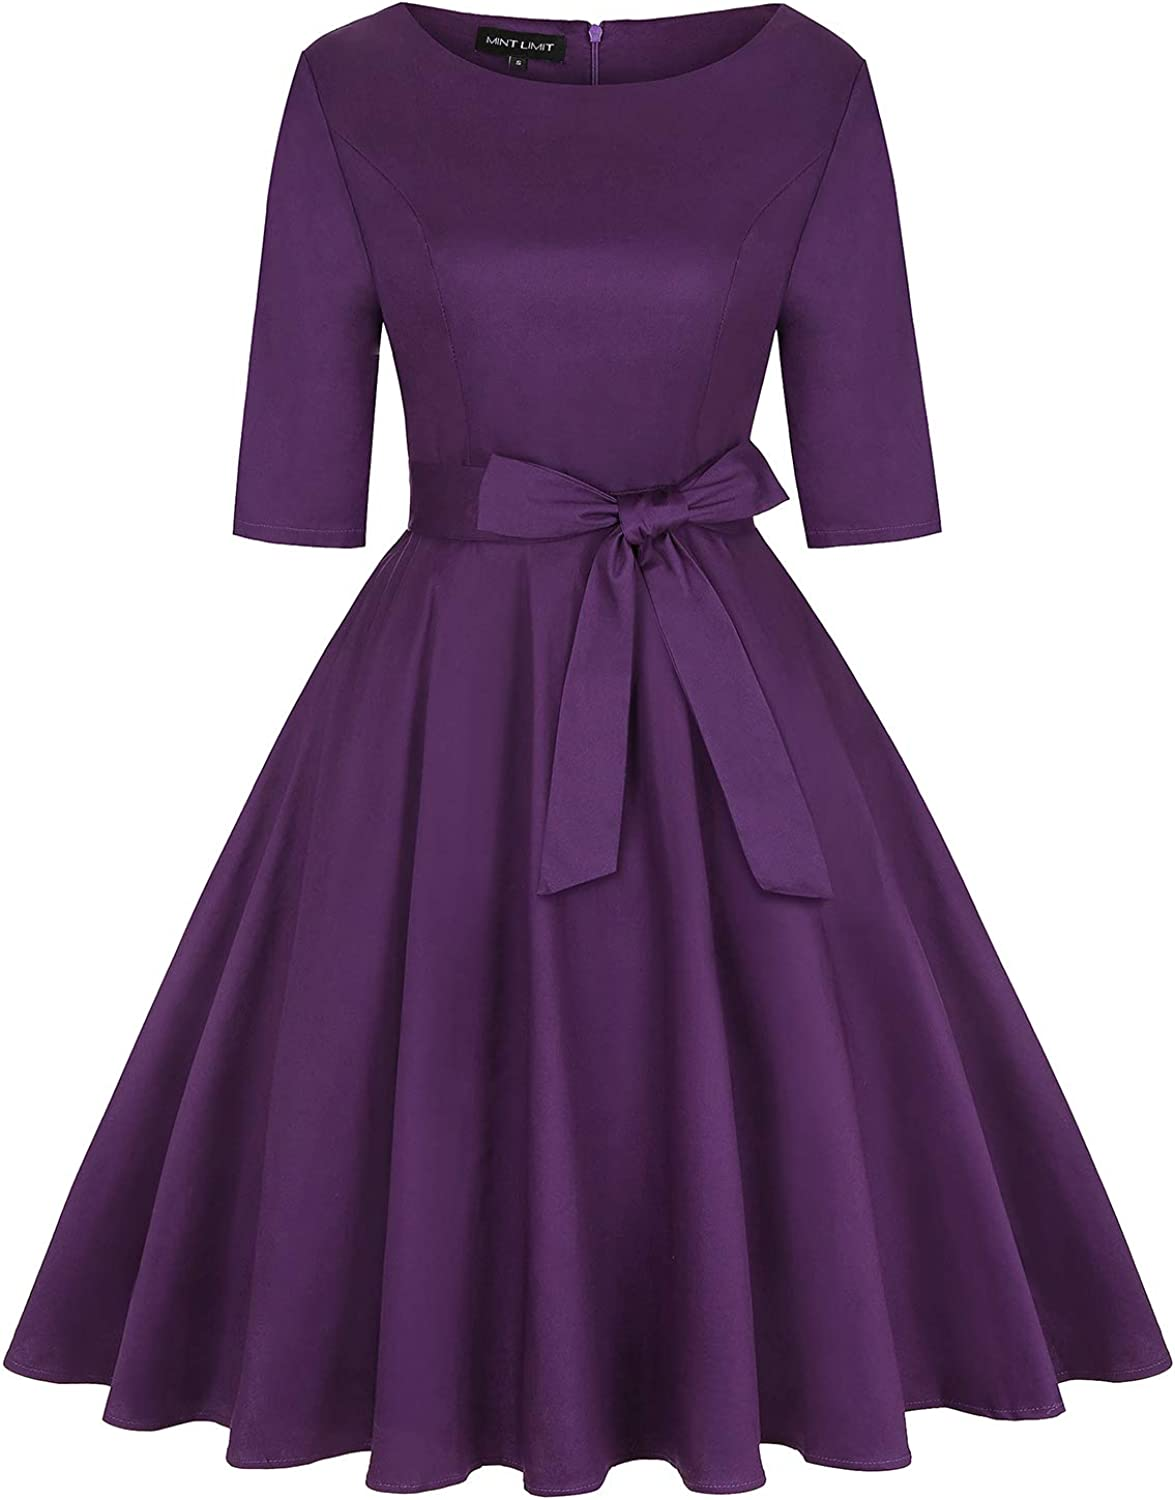 MINTLIMIT Women's Vintage 1950s Retro Rockabilly Cocktail Swing Party Midi Dresses with Pockets